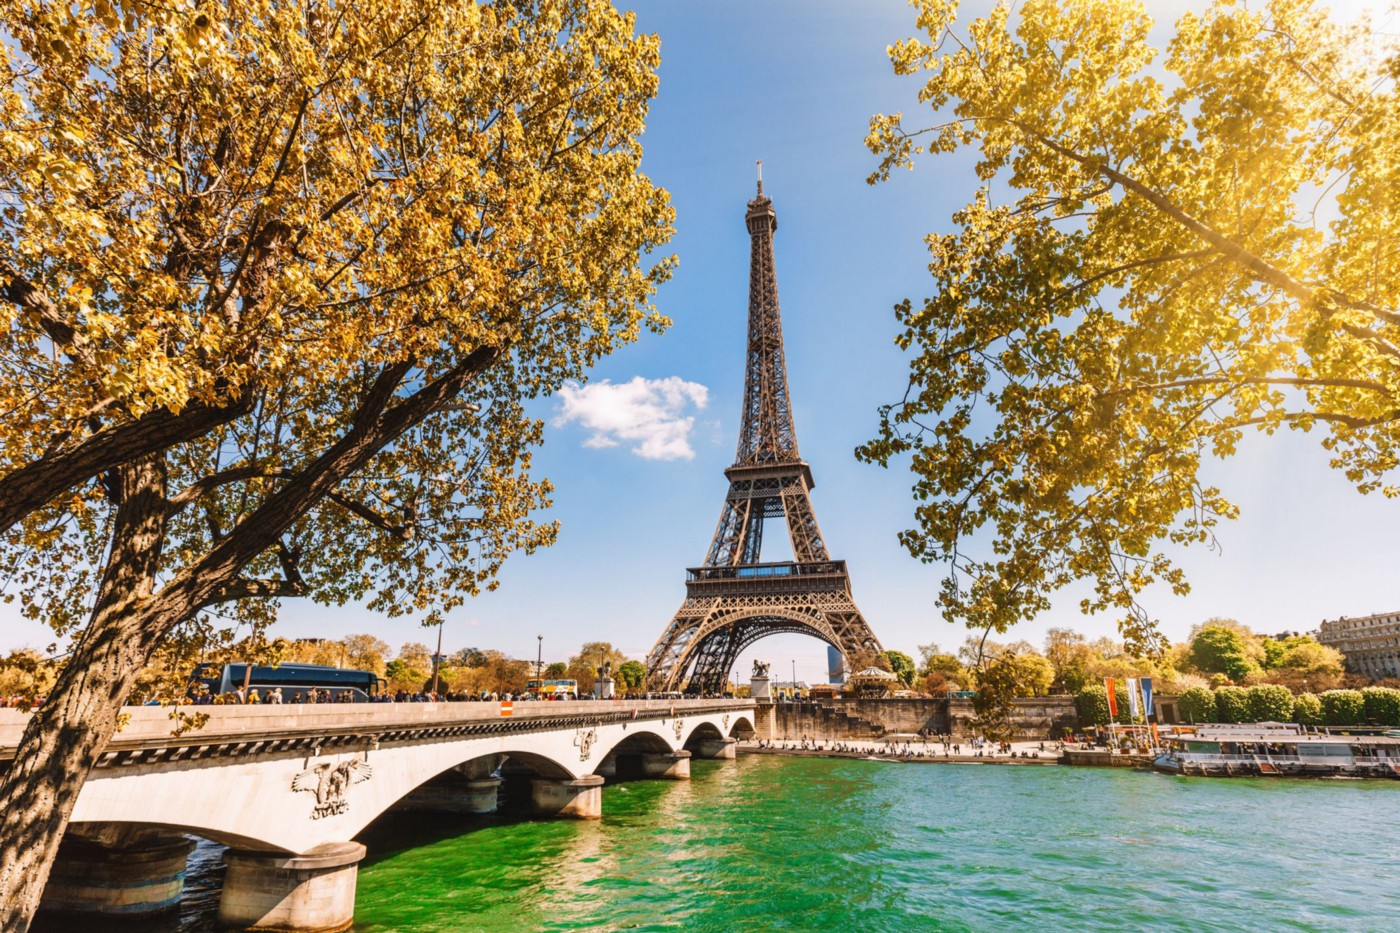 Top 20 places you must see in town of love Paris, France   by ...